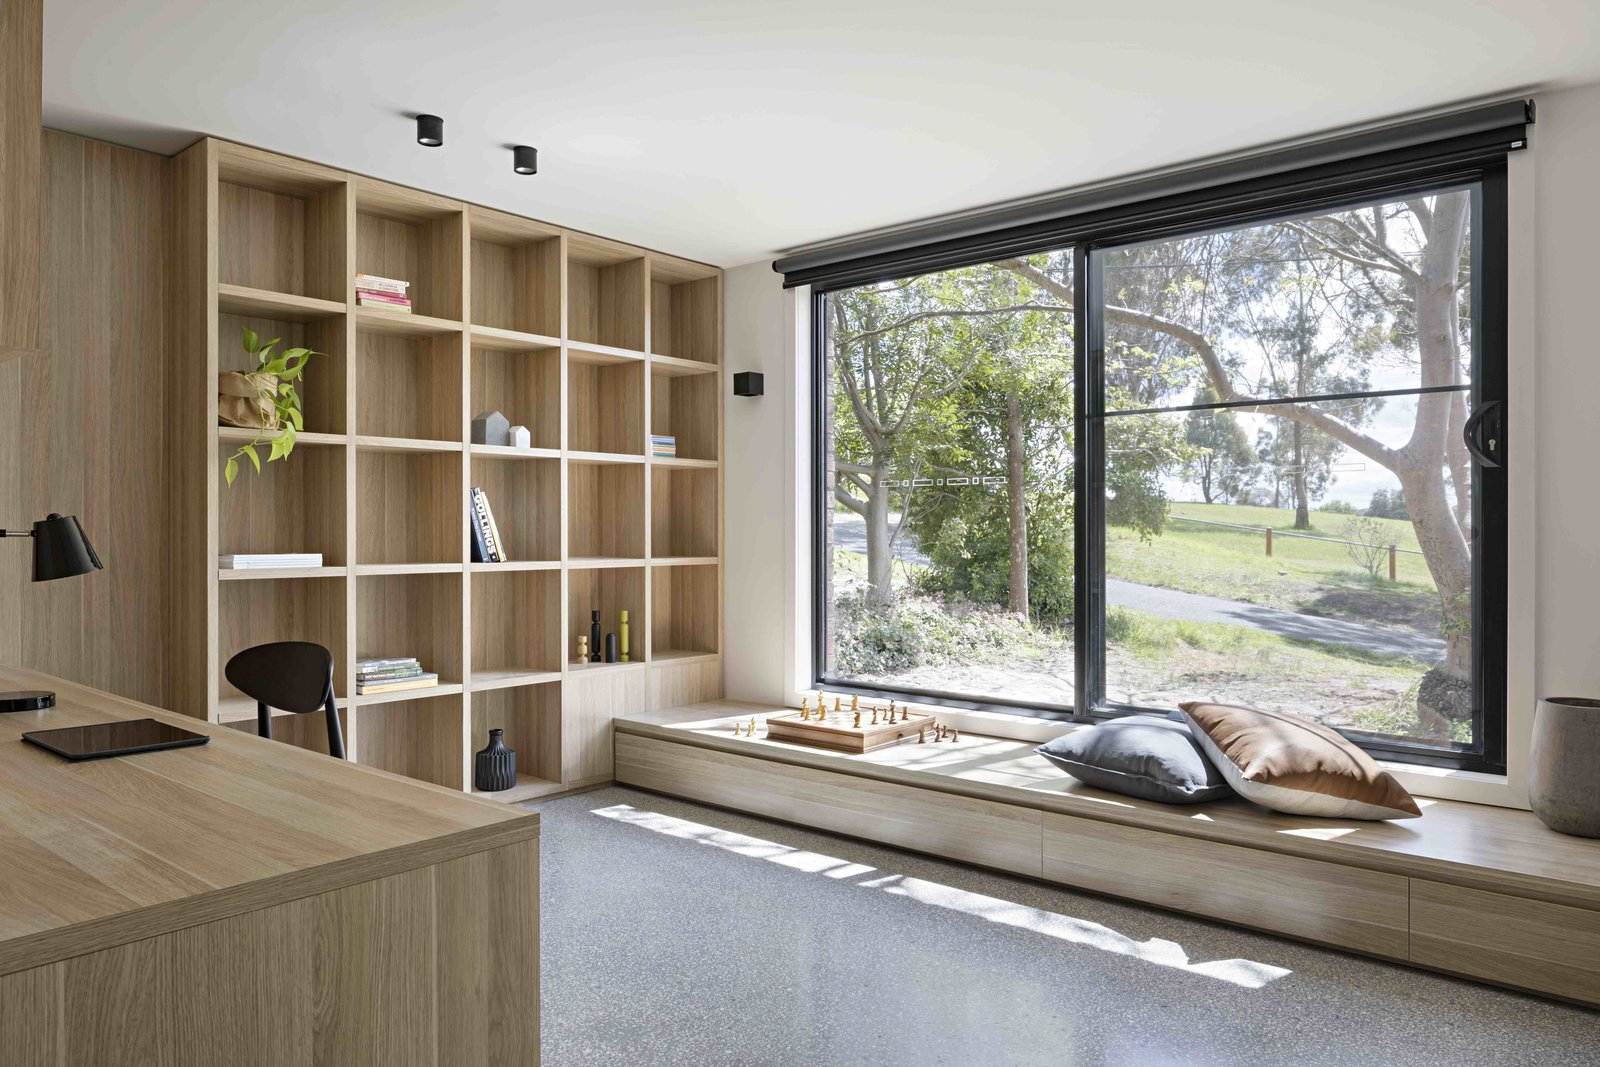 Office, Library Room Type, Study Room Type, Chair, Storage, Shelves, Desk, Bookcase, and Lamps  Photo 8 of 17 in A Remodel Turns a Dark and Choppy House in Melbourne Into a Bright, Flexible Family Home